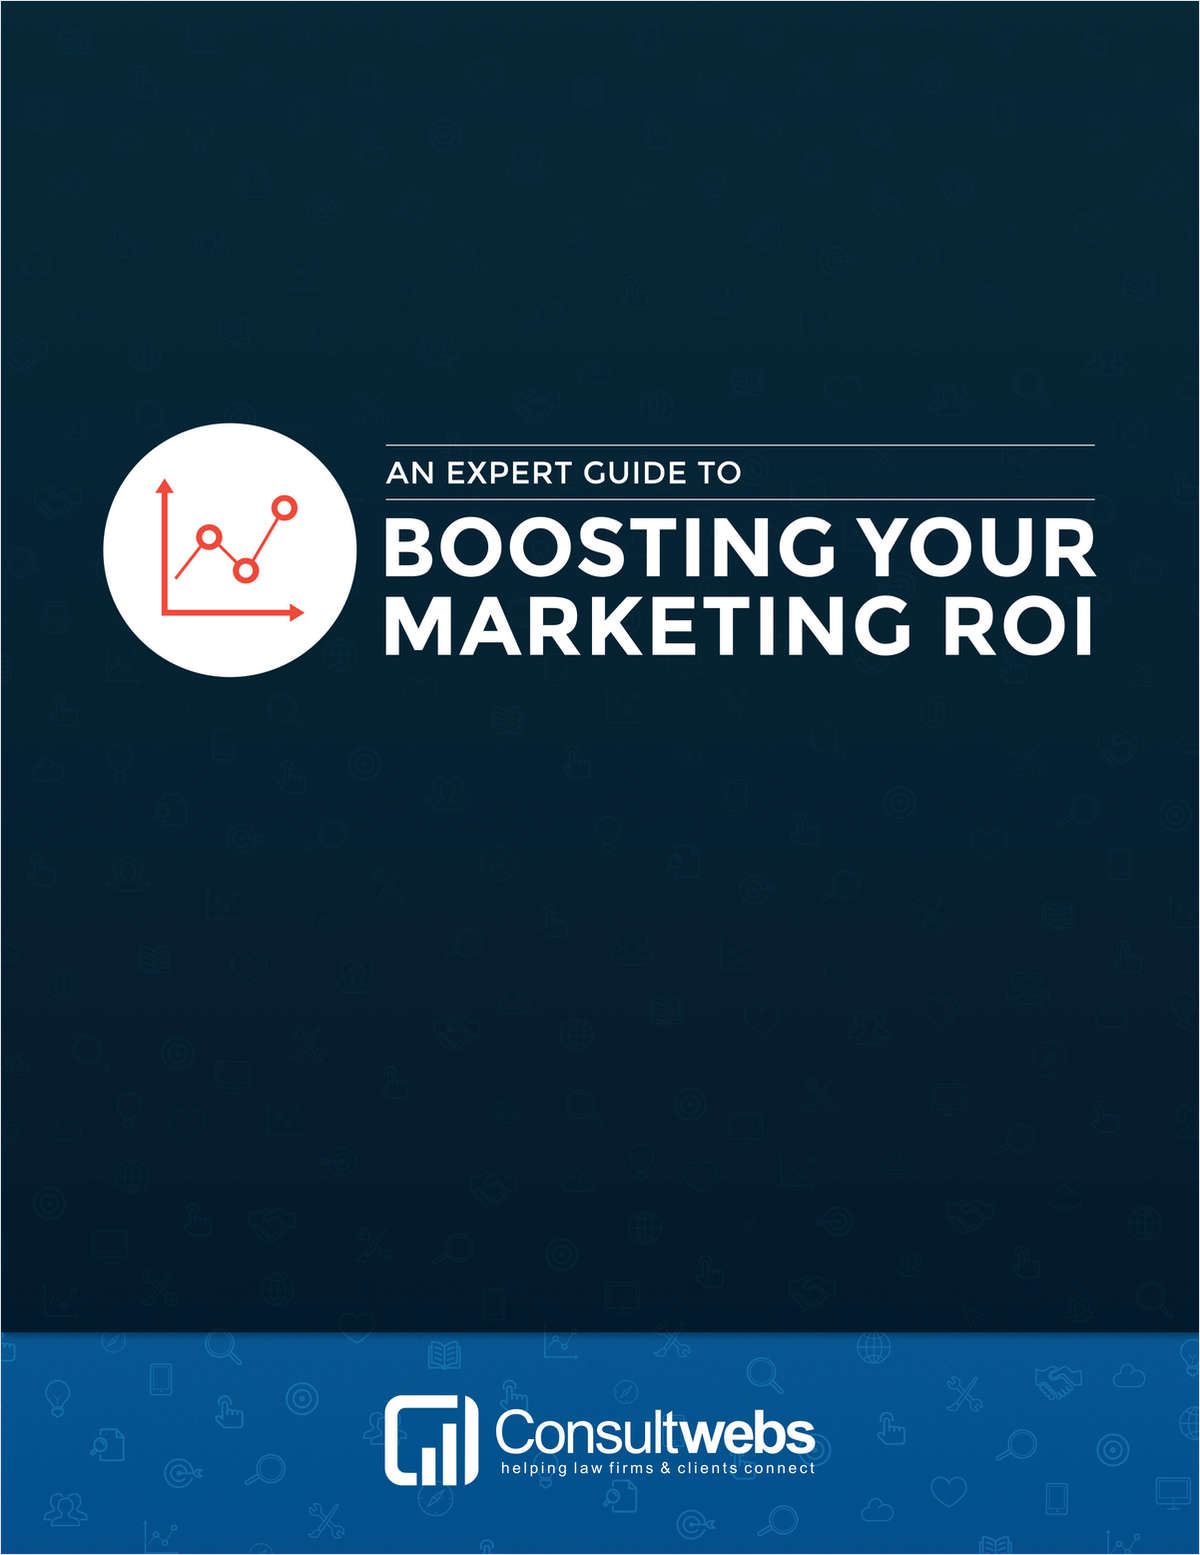 An Expert Guide to Boosting Your Marketing ROI